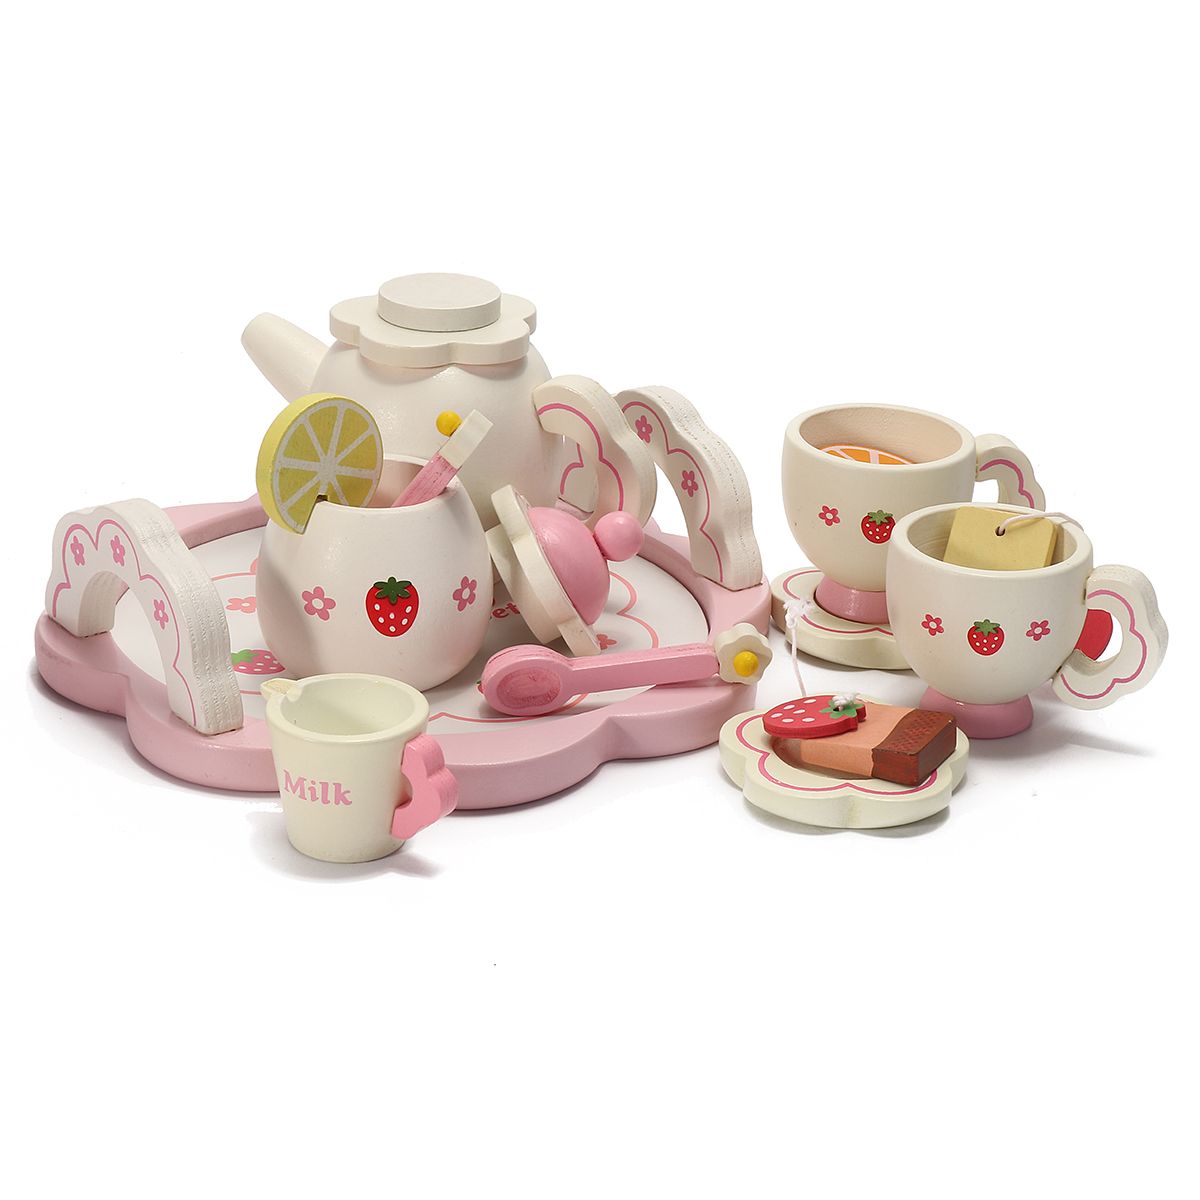 Tea Set Toy Meigar Wooden Kids Tea Set Role Play Kitchen Toys Pretend Cups Teapot Tray Bowl Gifts